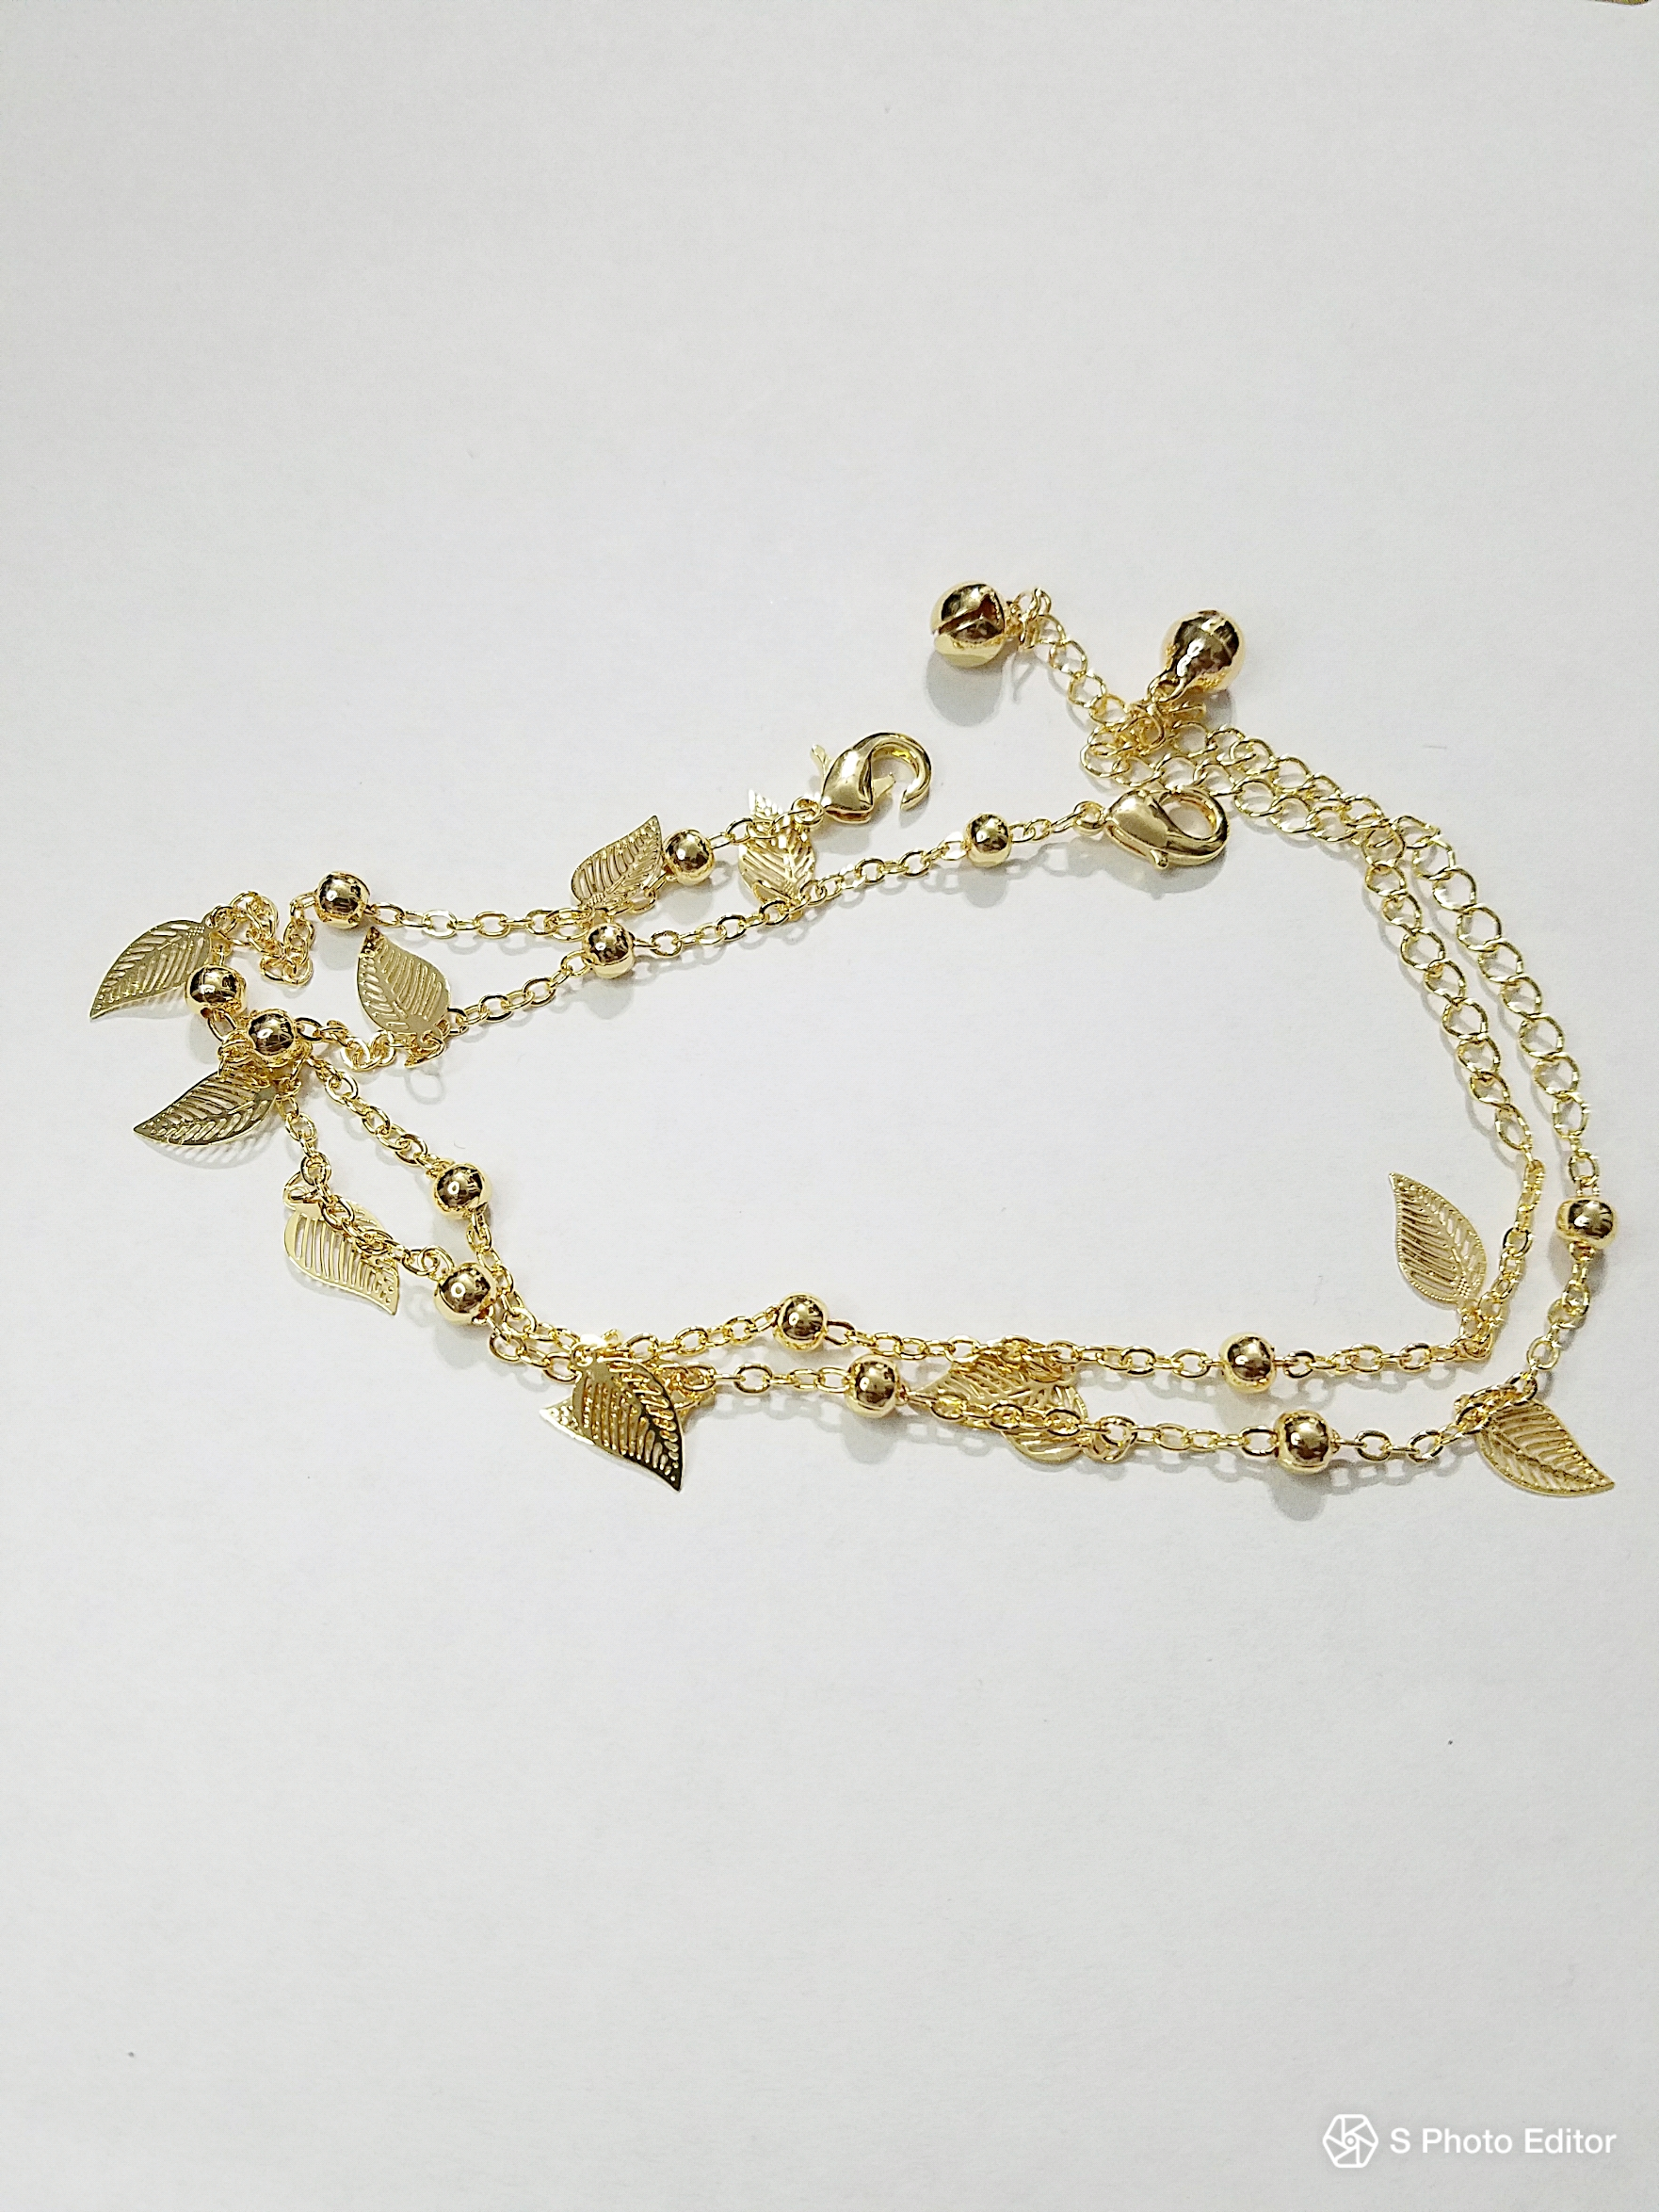 ruby red high stones anklet shack buy and breathtakingly in must product quality img jewelberry green stunning white a